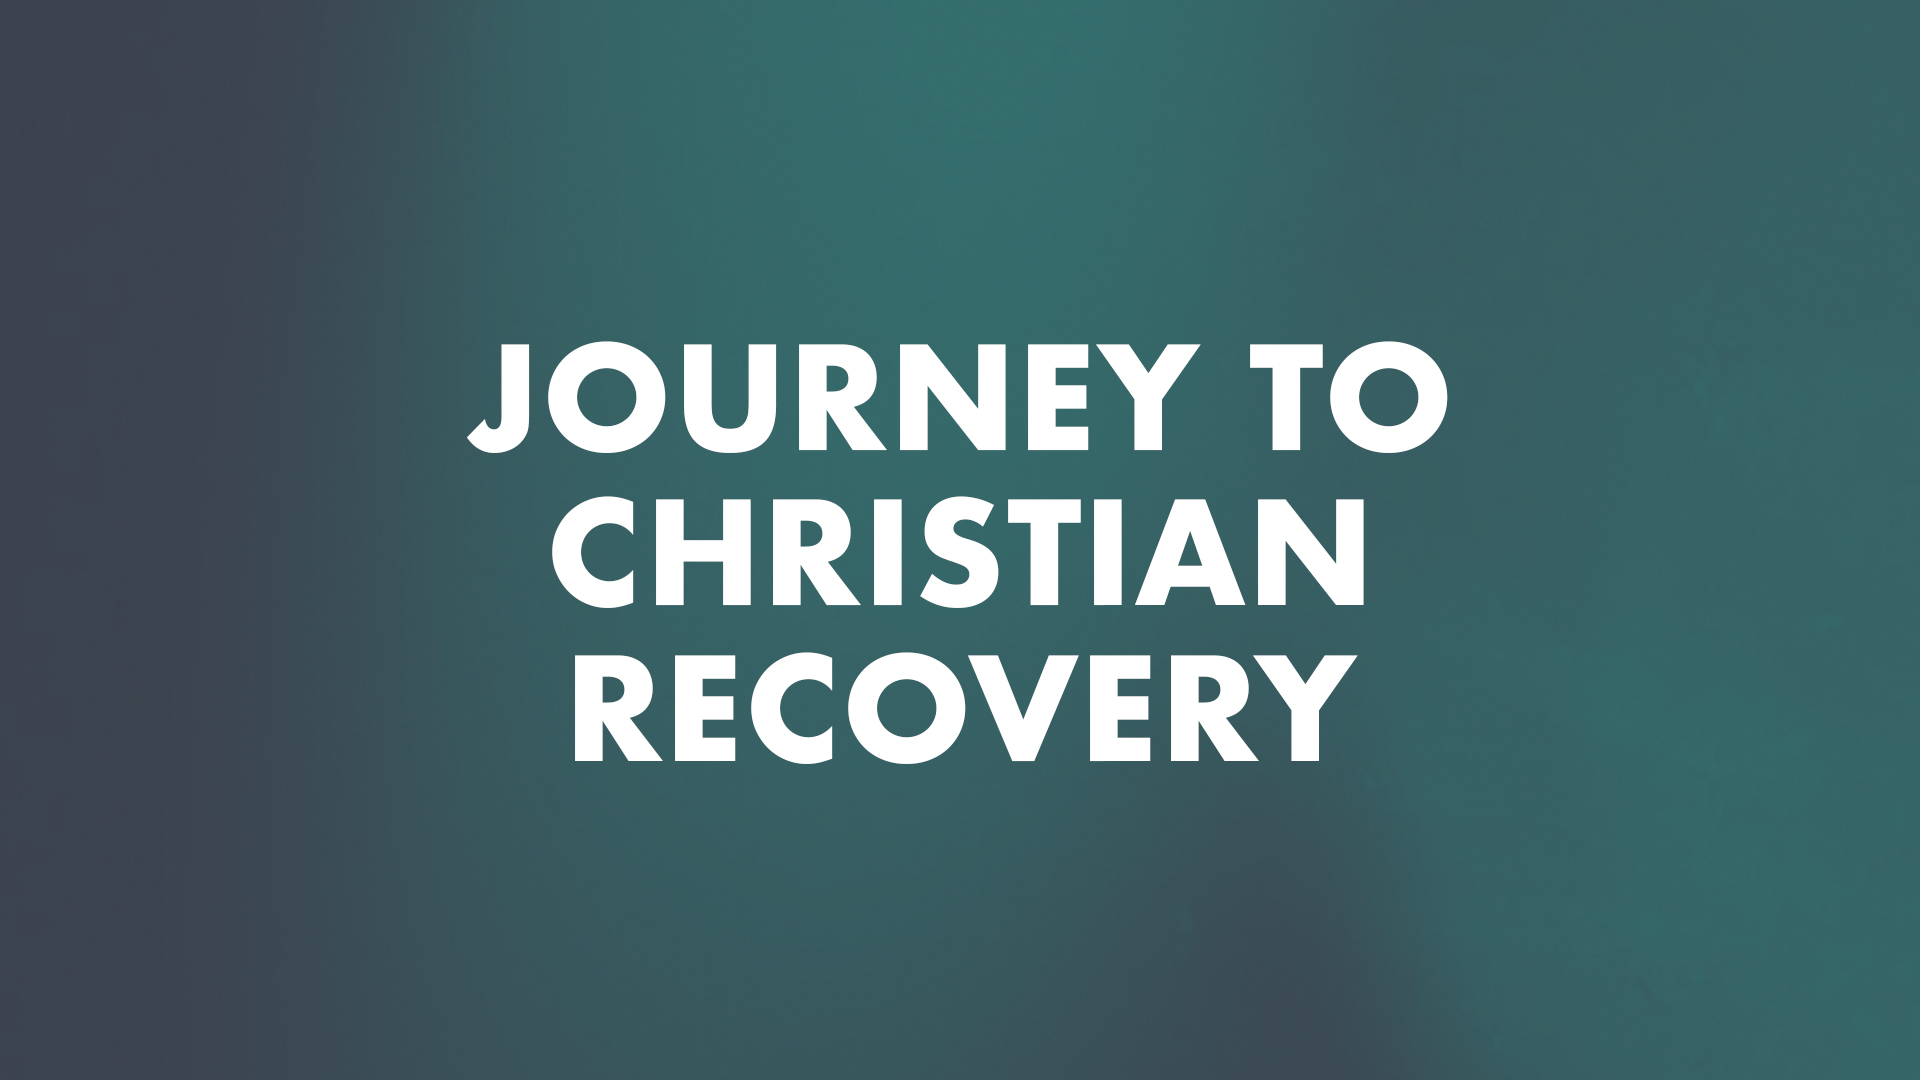 Journey to christian recovery